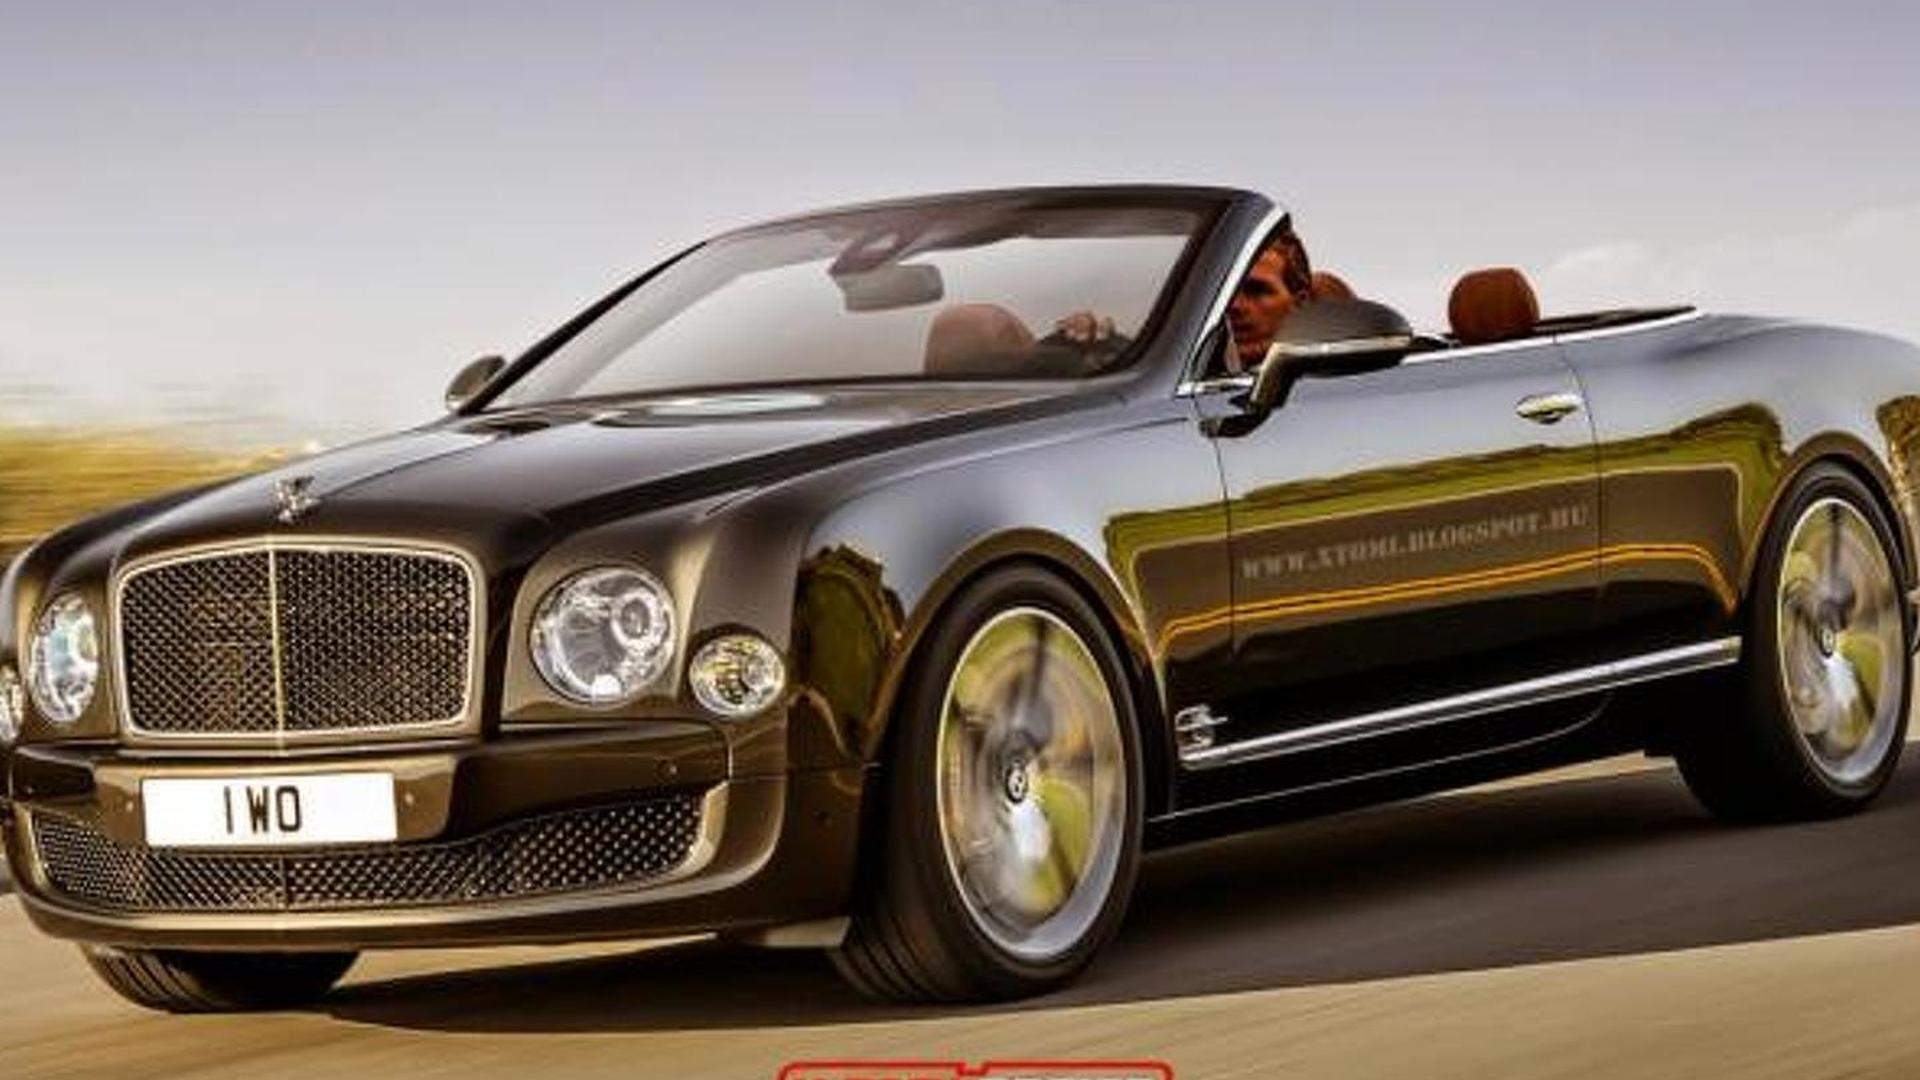 bentley express auto for price a convertible mulsanne